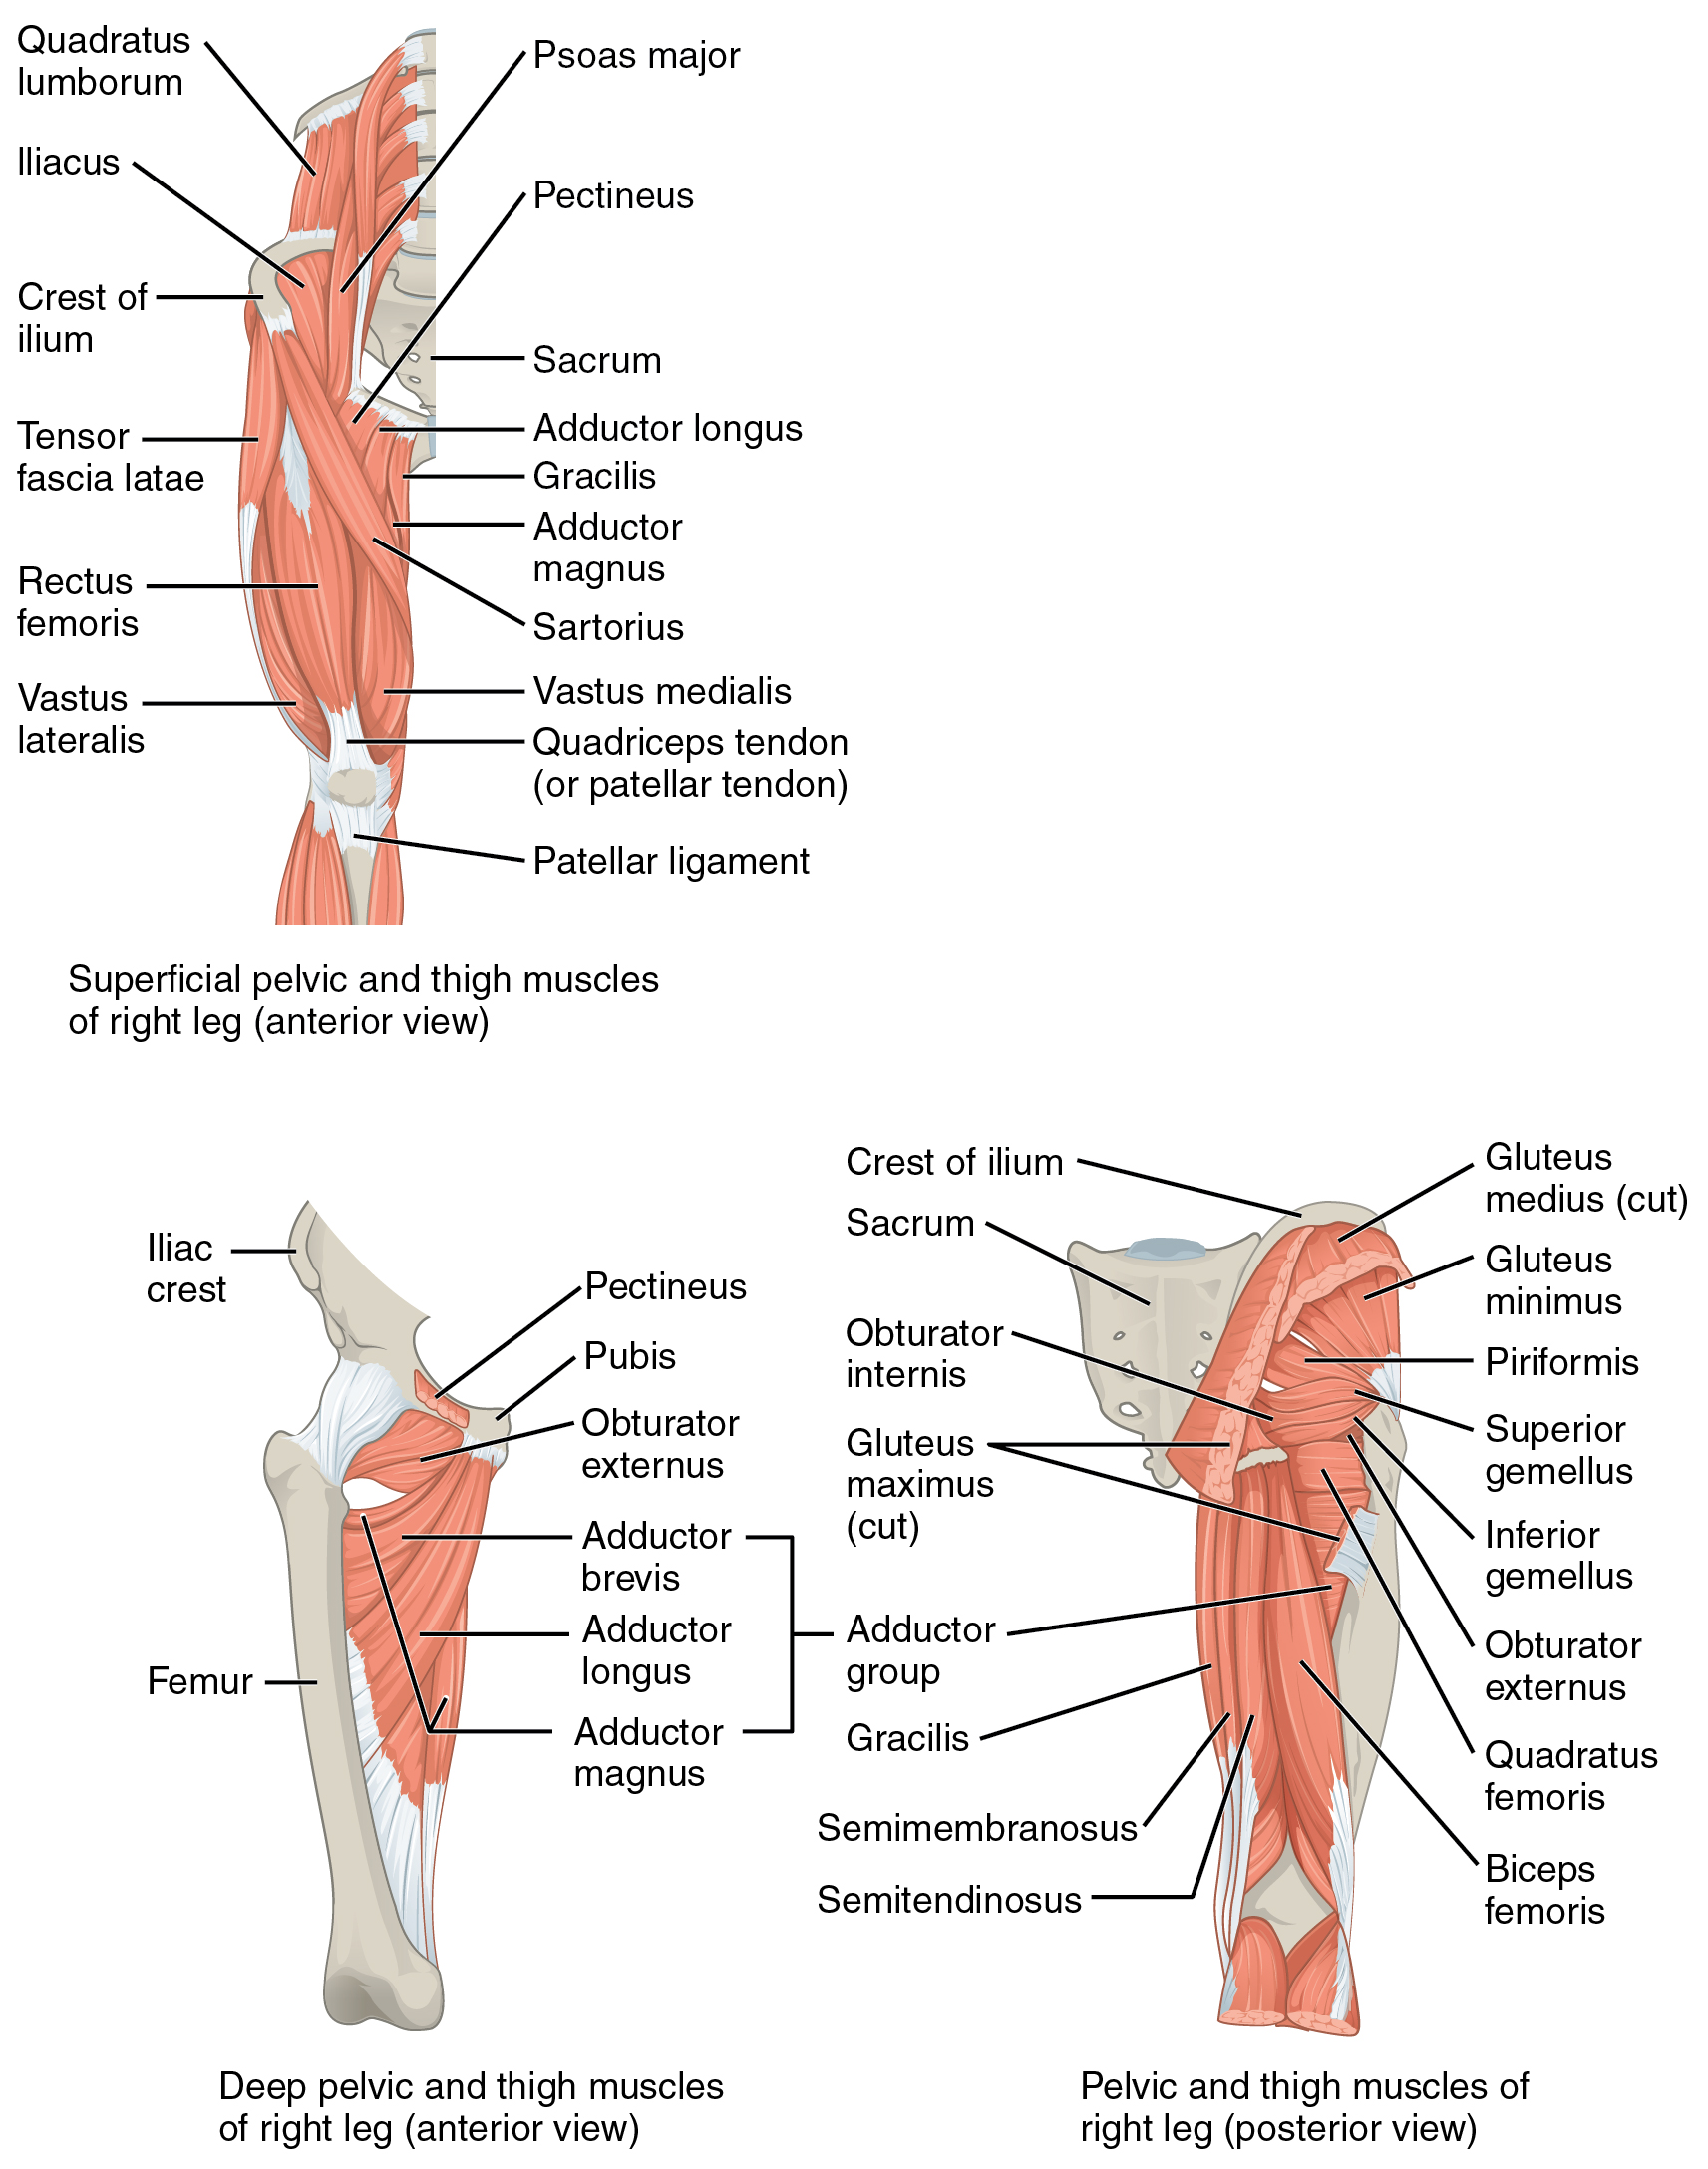 11.6 Appendicular Muscles of the Pelvic Girdle and Lower Limbs ...